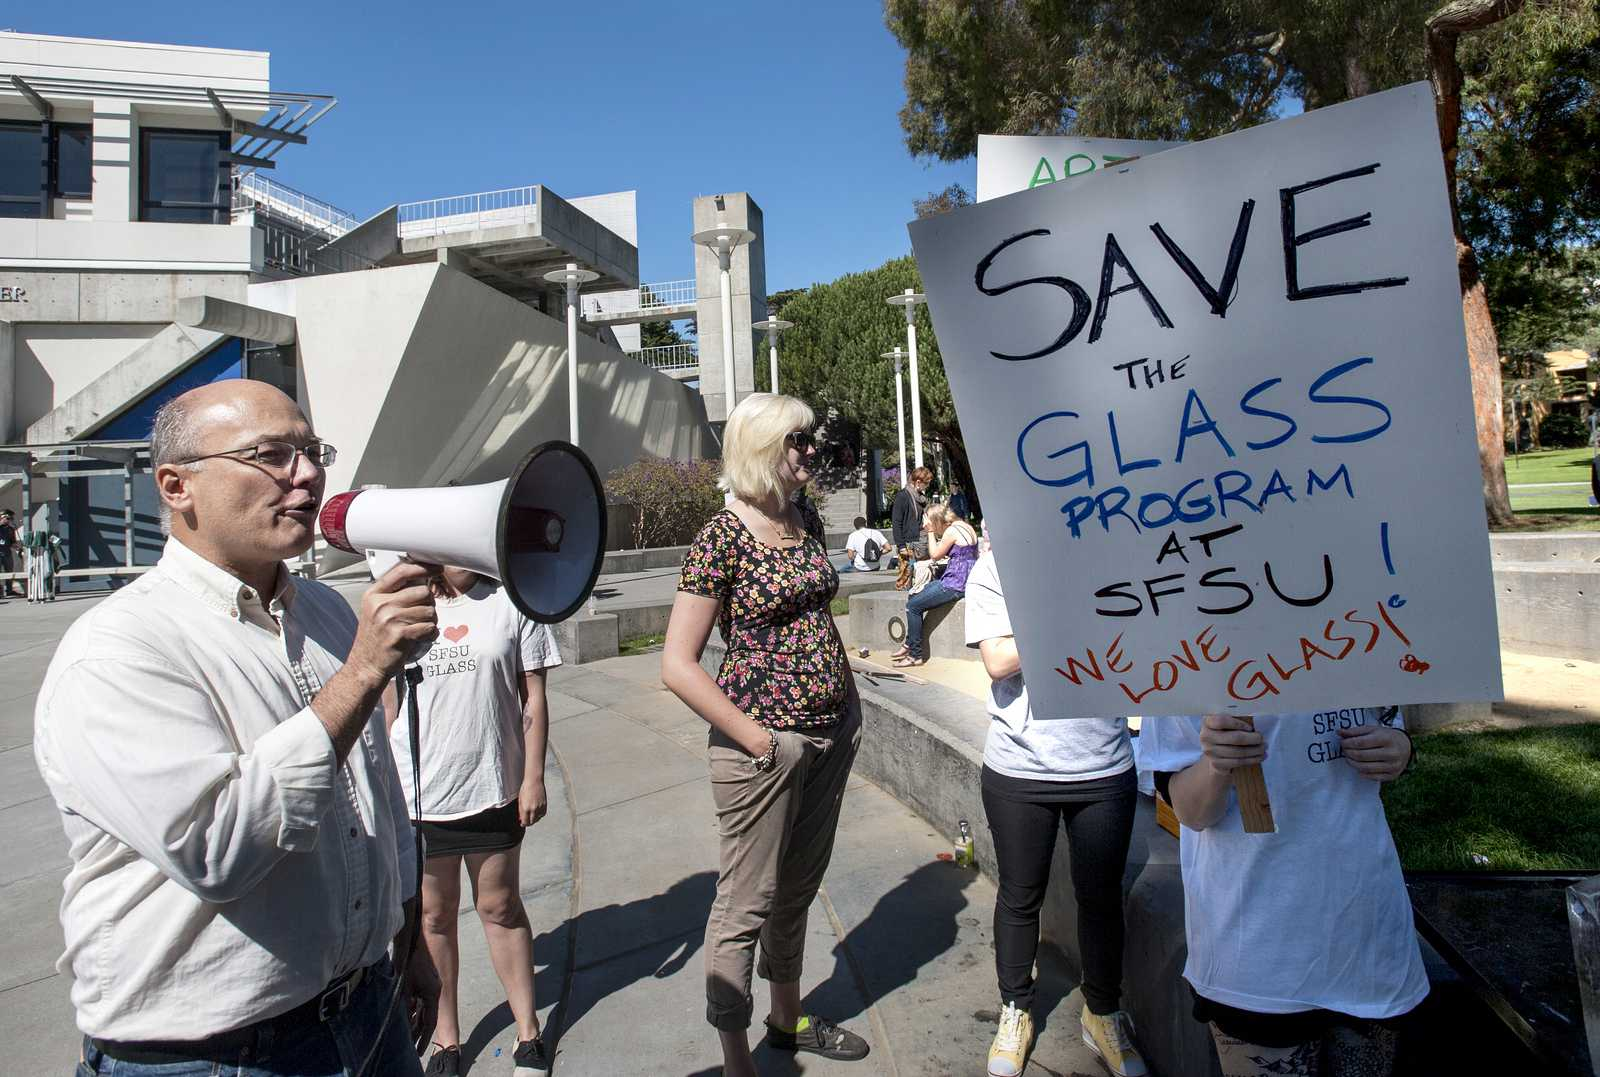 Glass class cancelation protest rallies small group